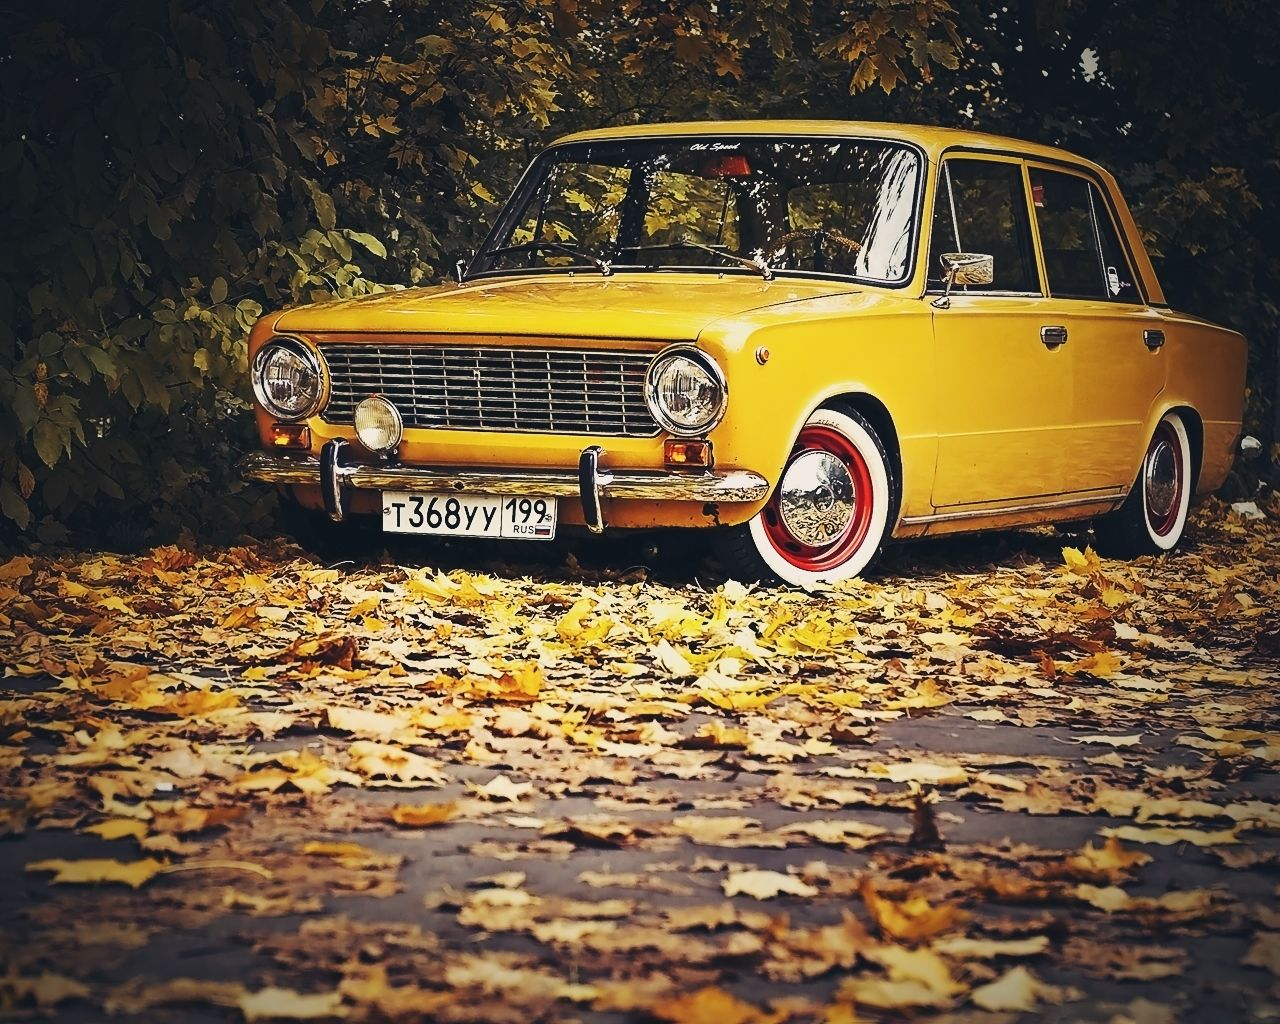 Classic Lada 2101 Fiat Cars Retro Cars Car Model